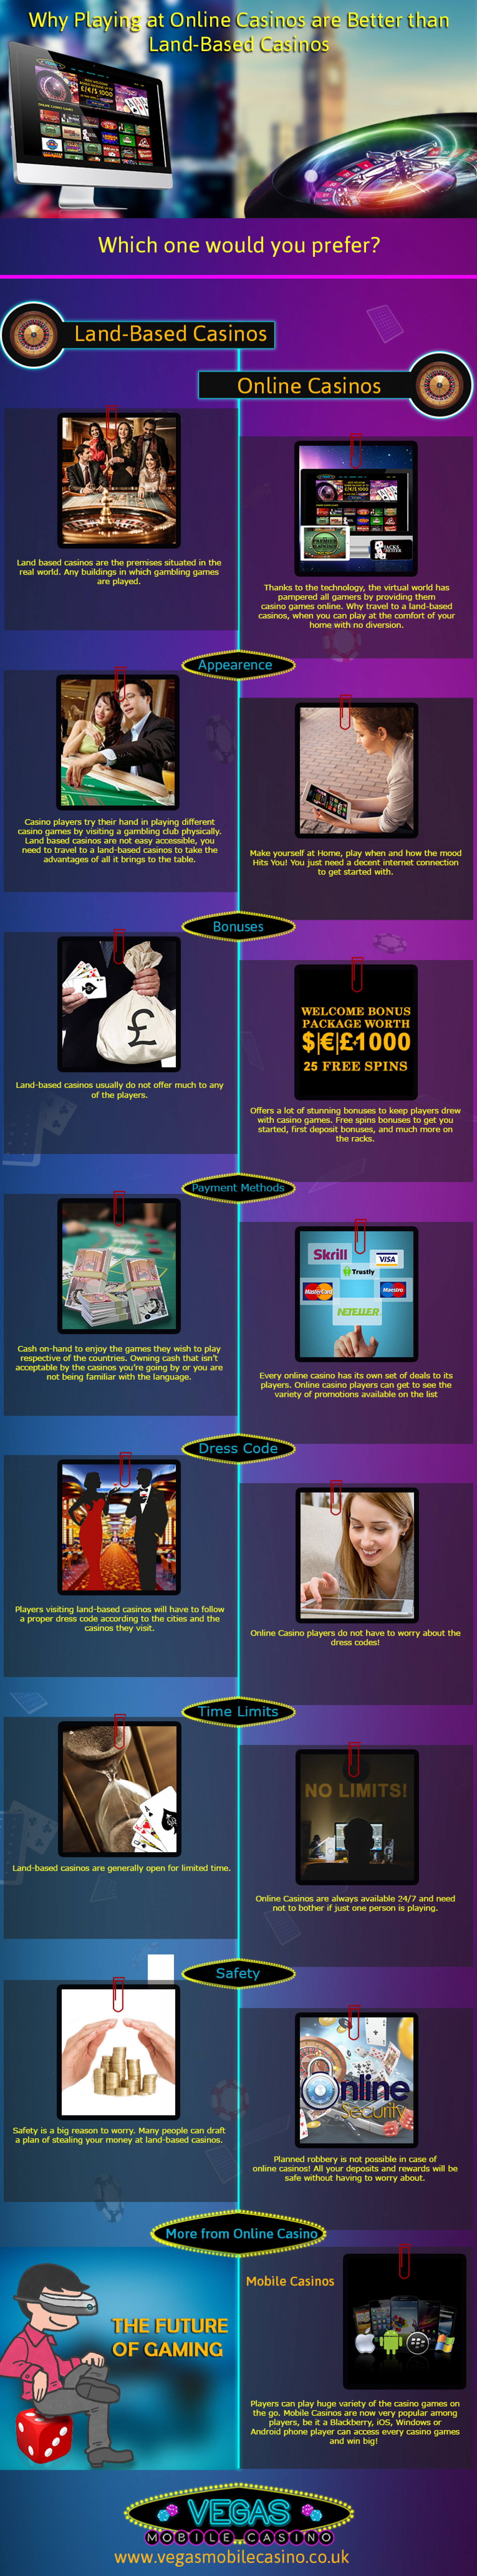 Overview - Land-Based Casinos and Online Casinos  Infographic